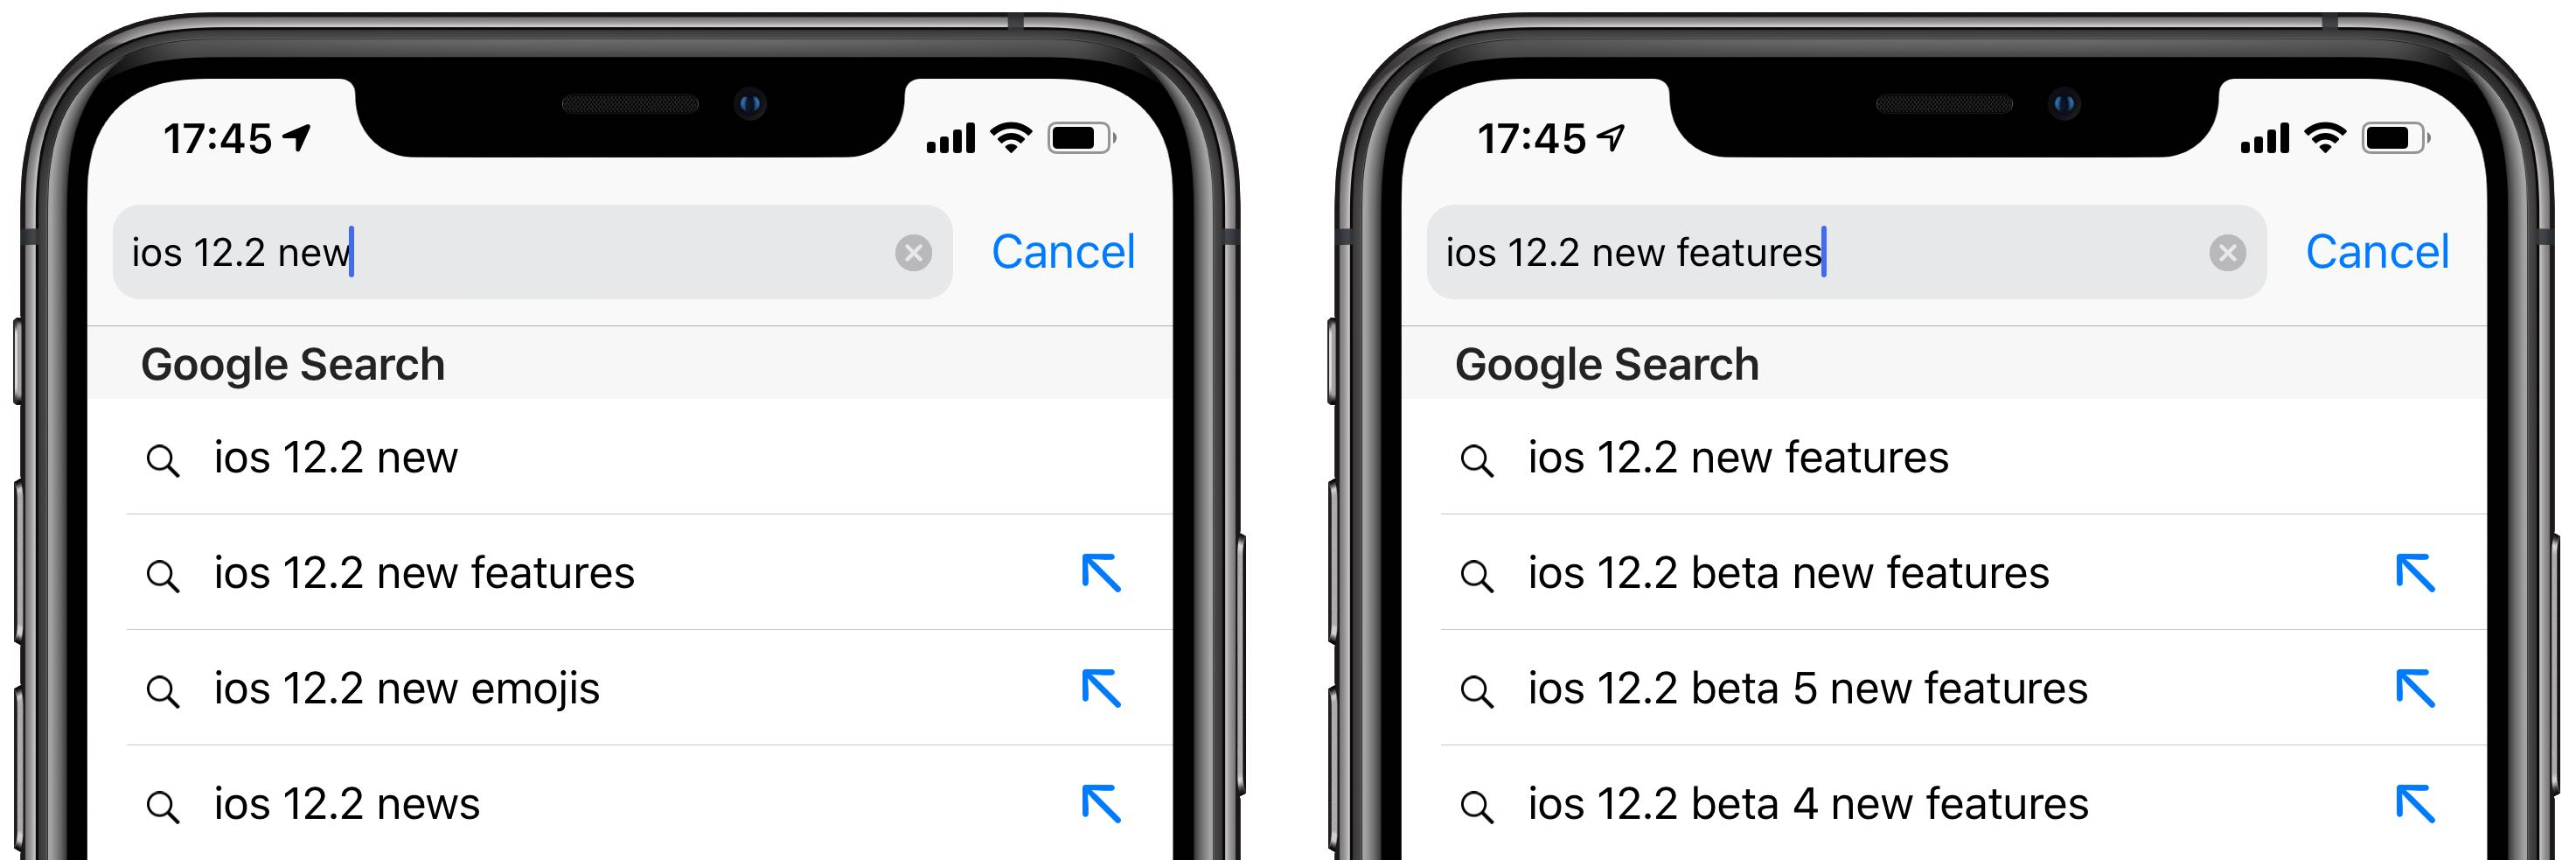 Safari on iOS 12 2 has a new feature for getting to targeted